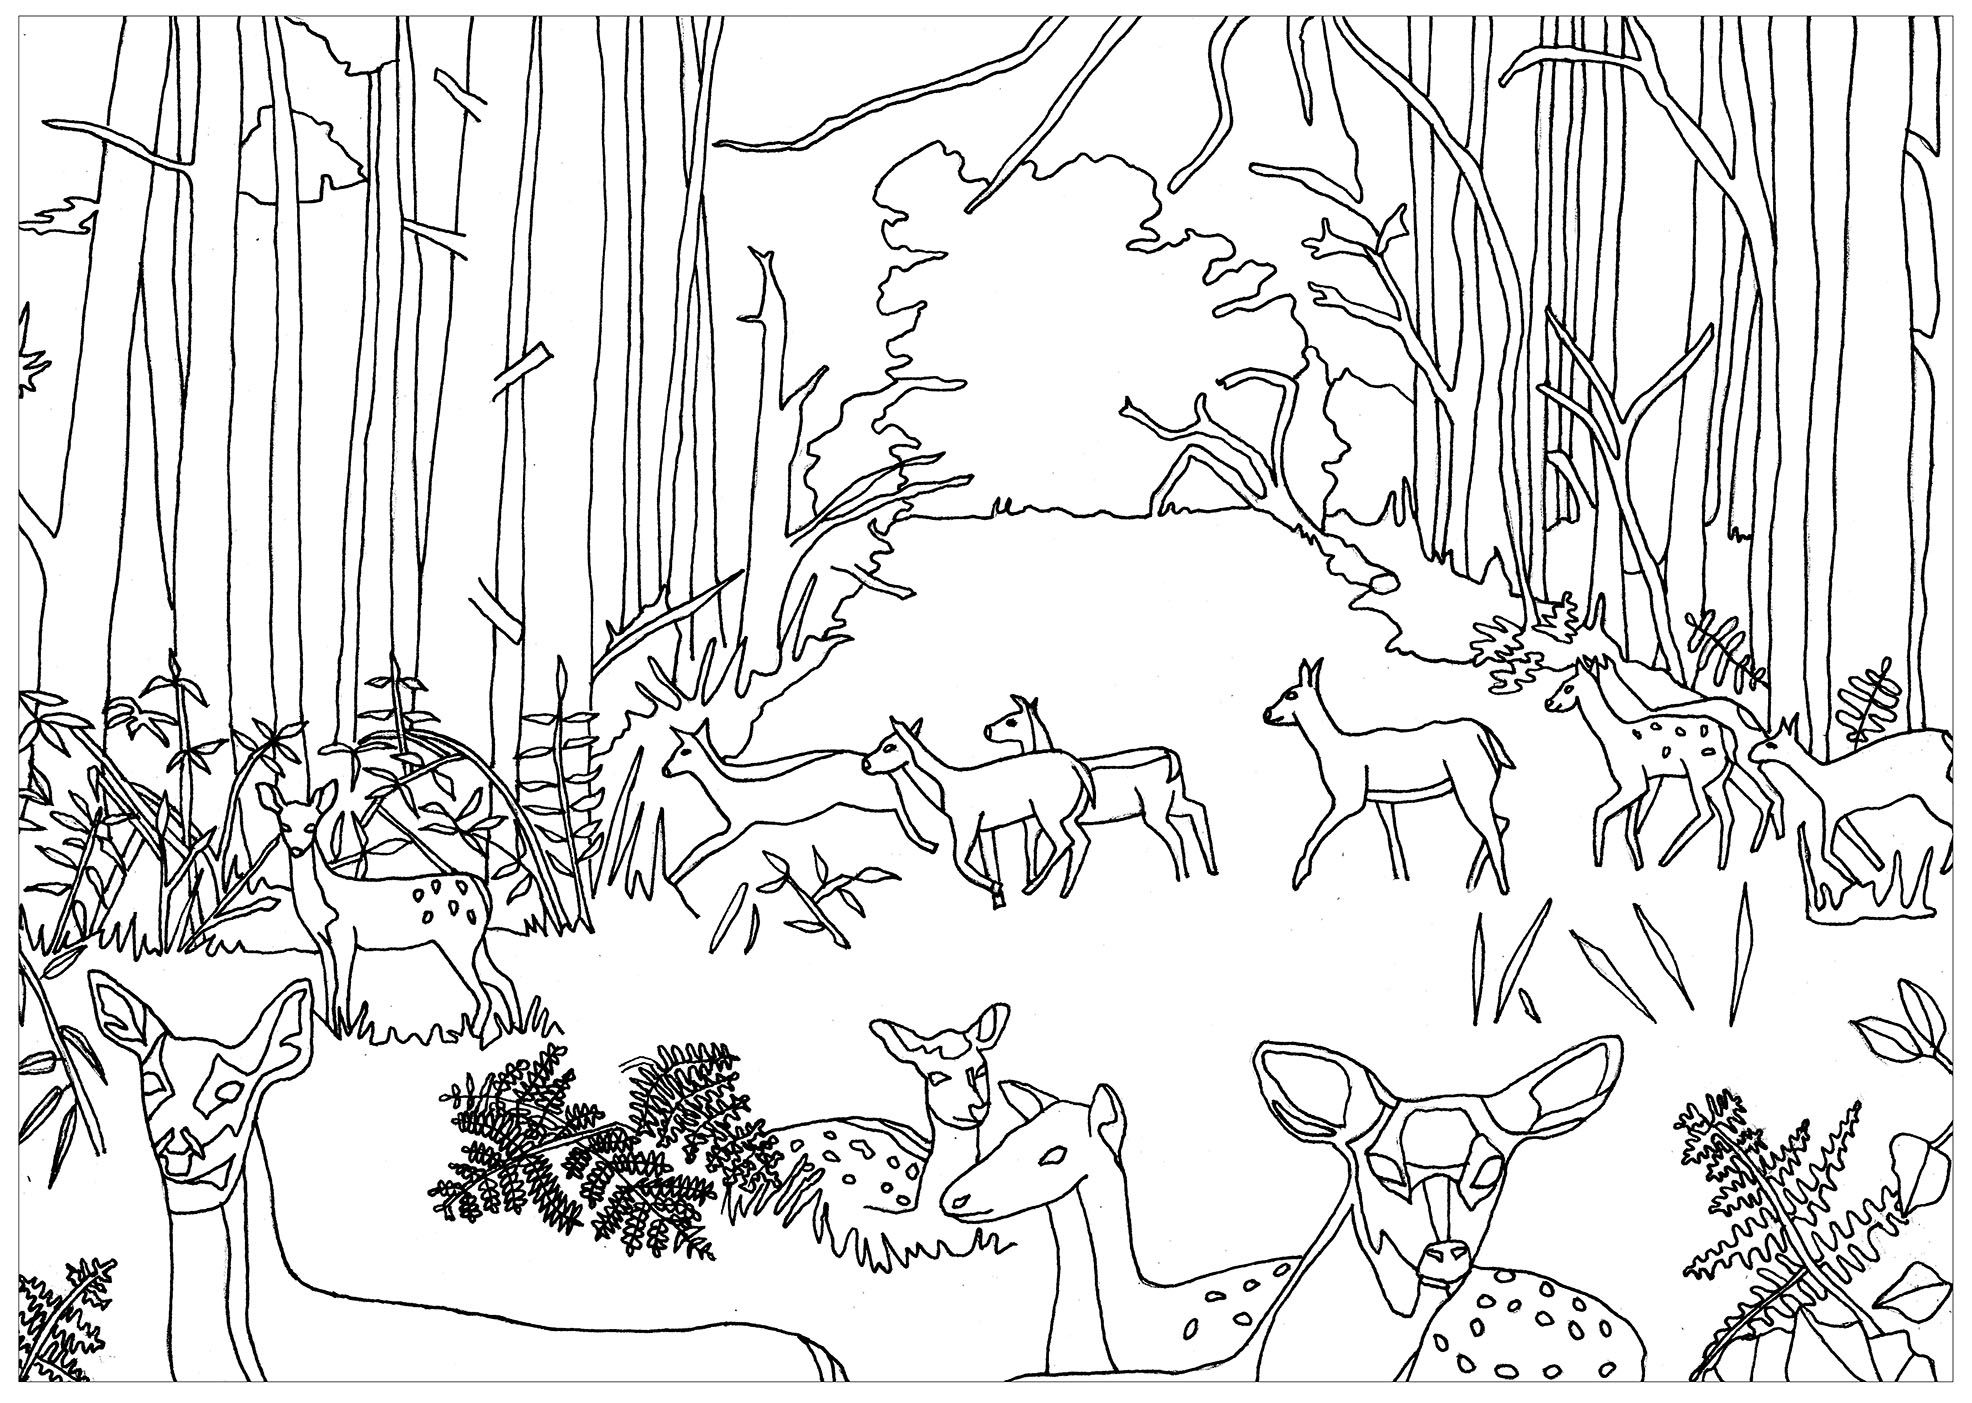 does and fawns in the forest from the